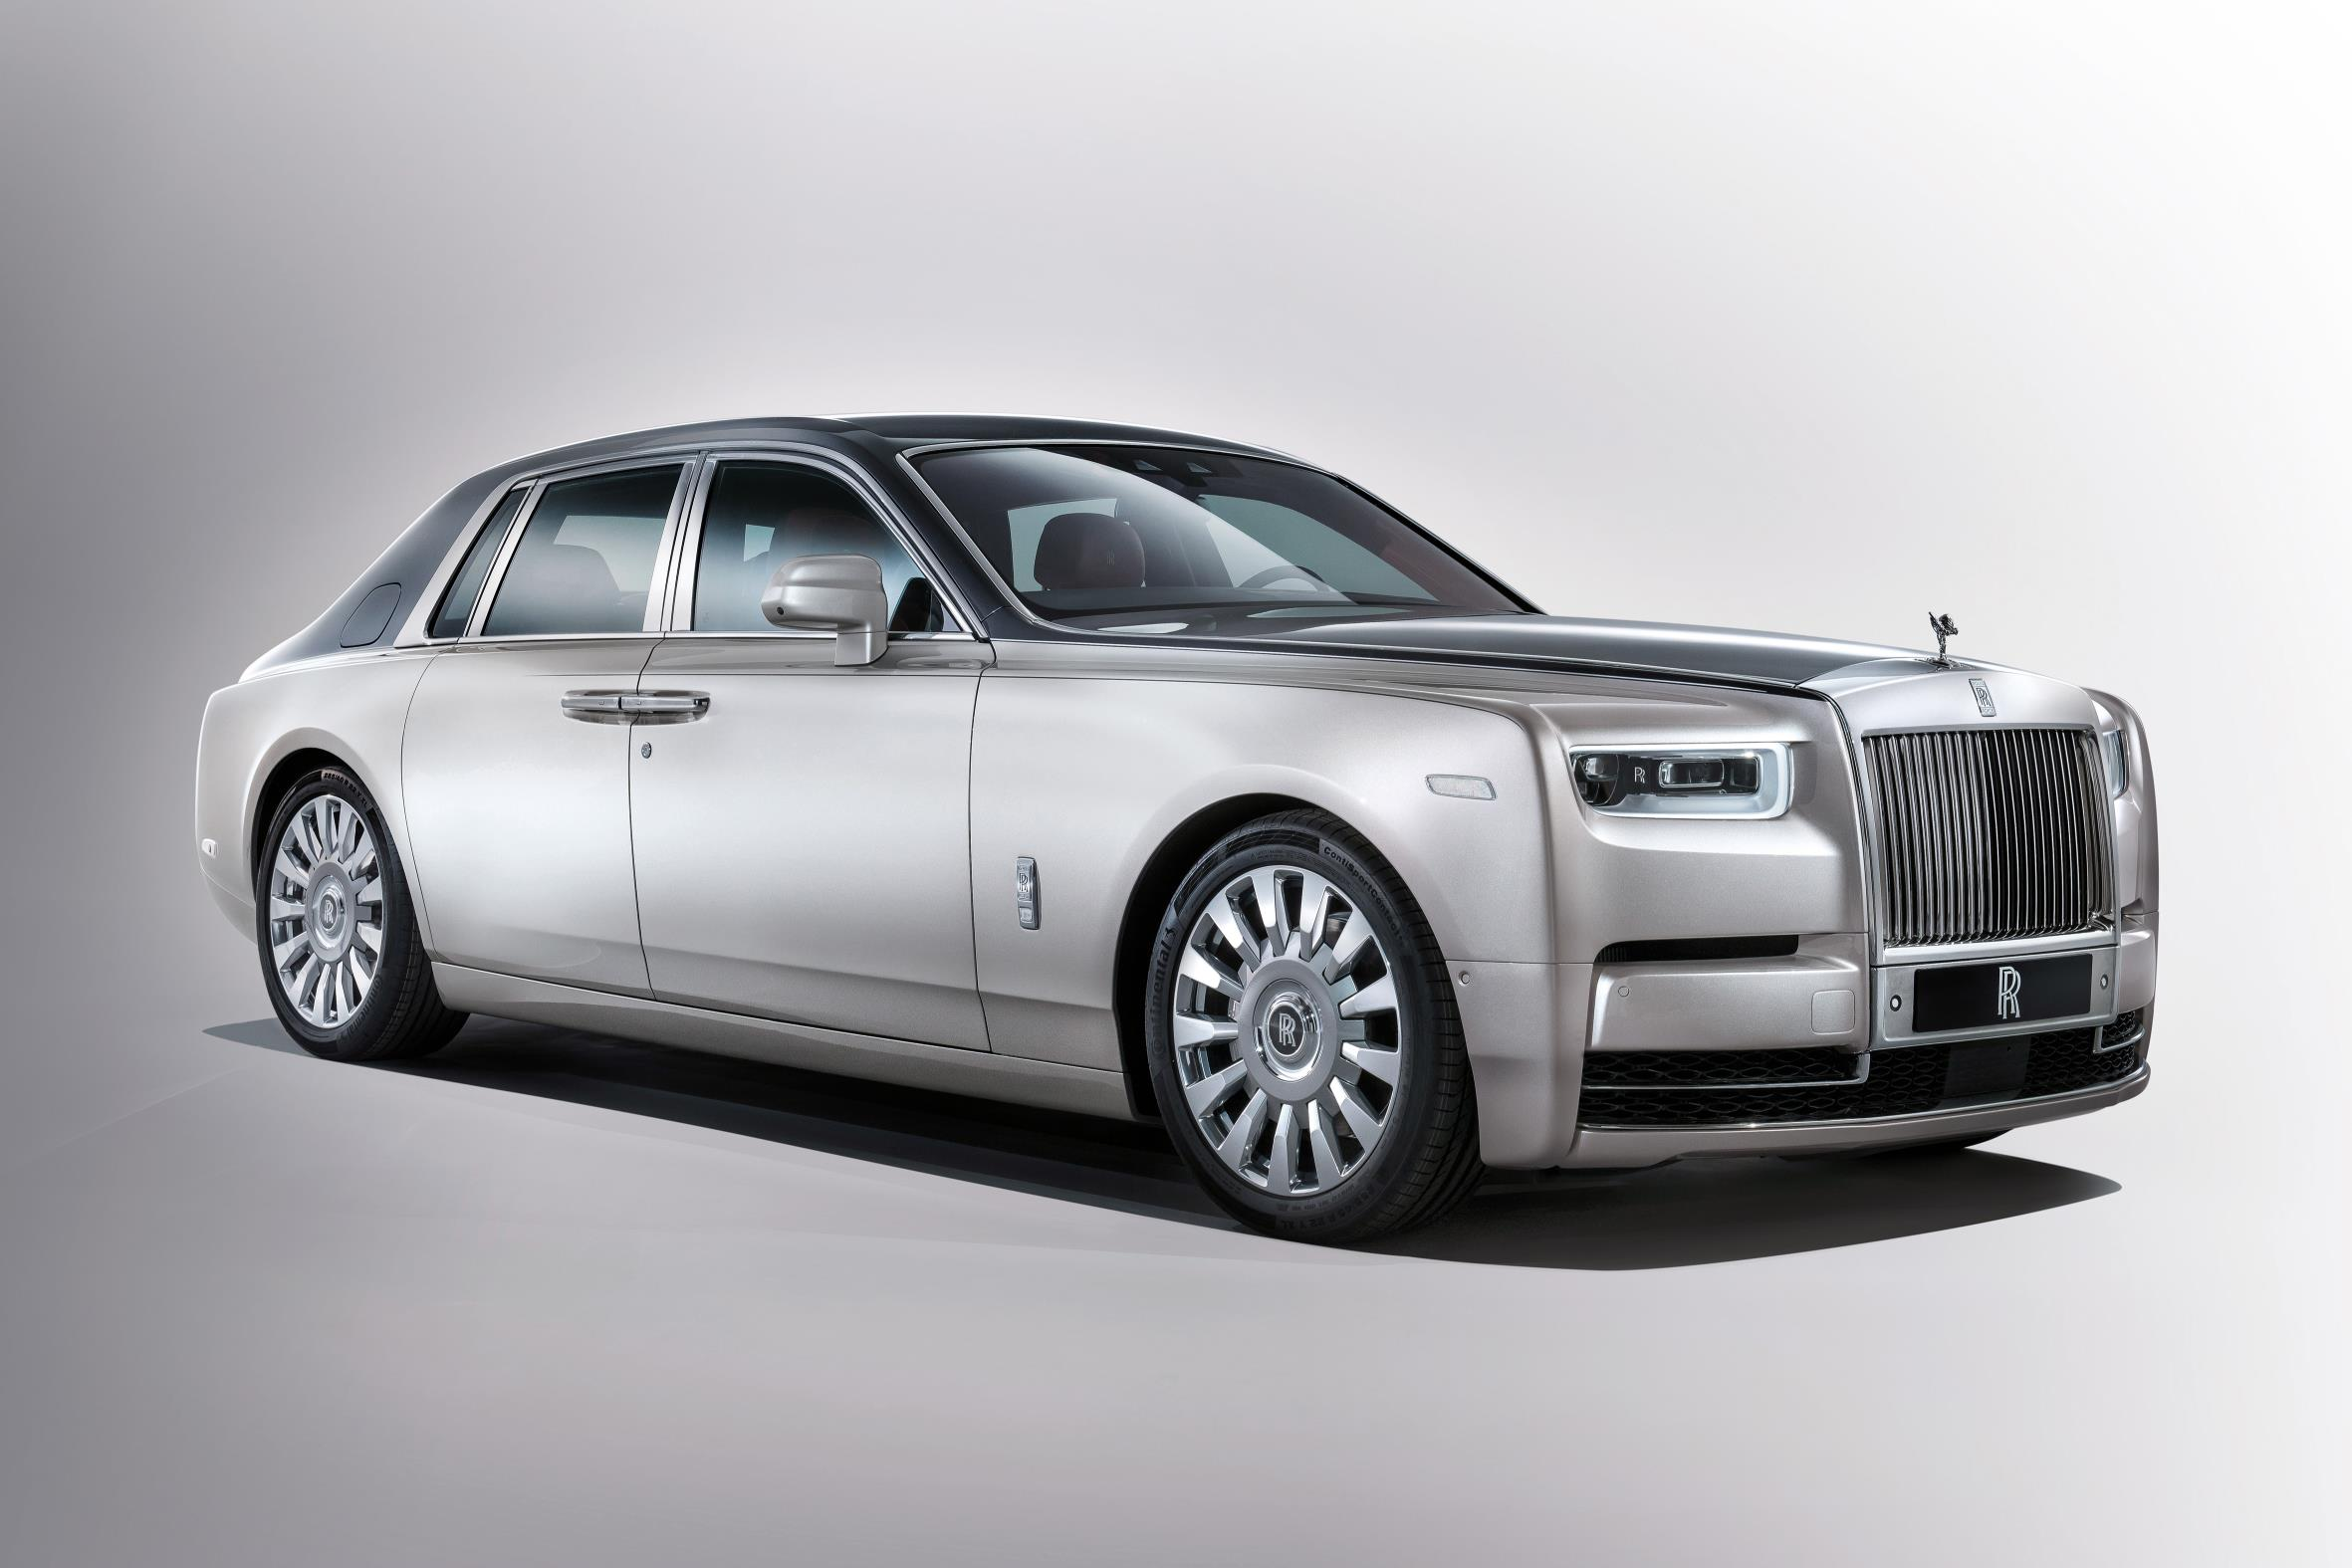 New Phantom reinvents luxury at a whole new level